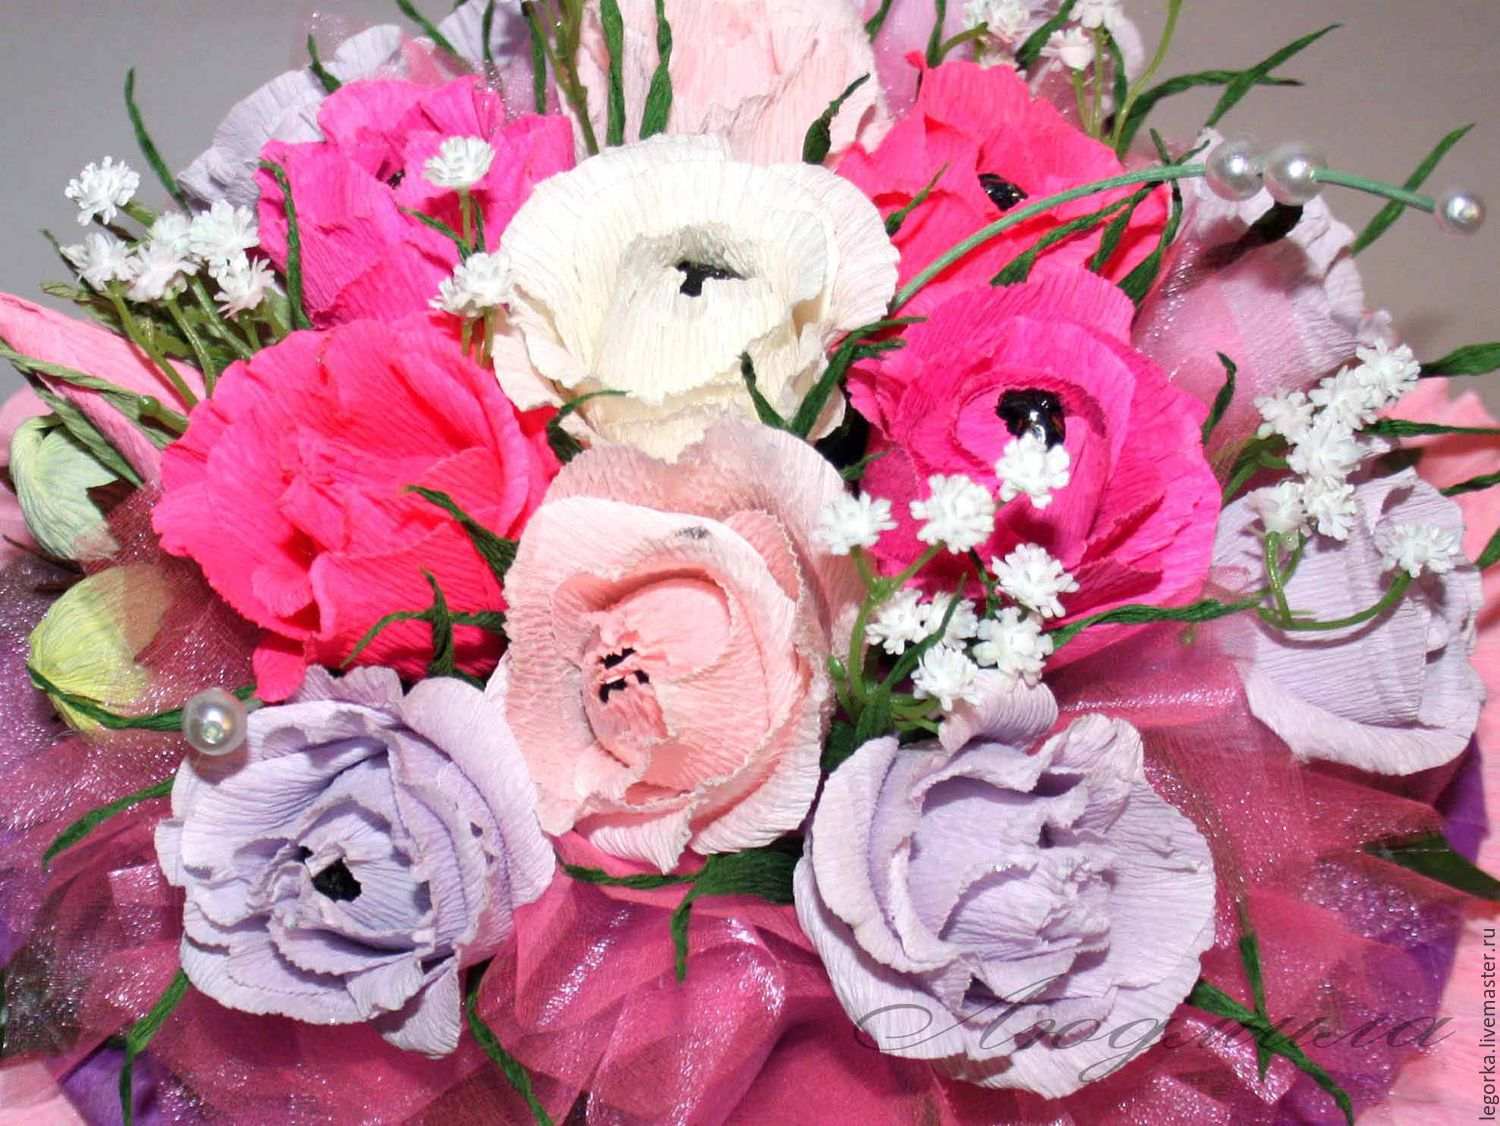 A bouquet of flowers `Spring romance`